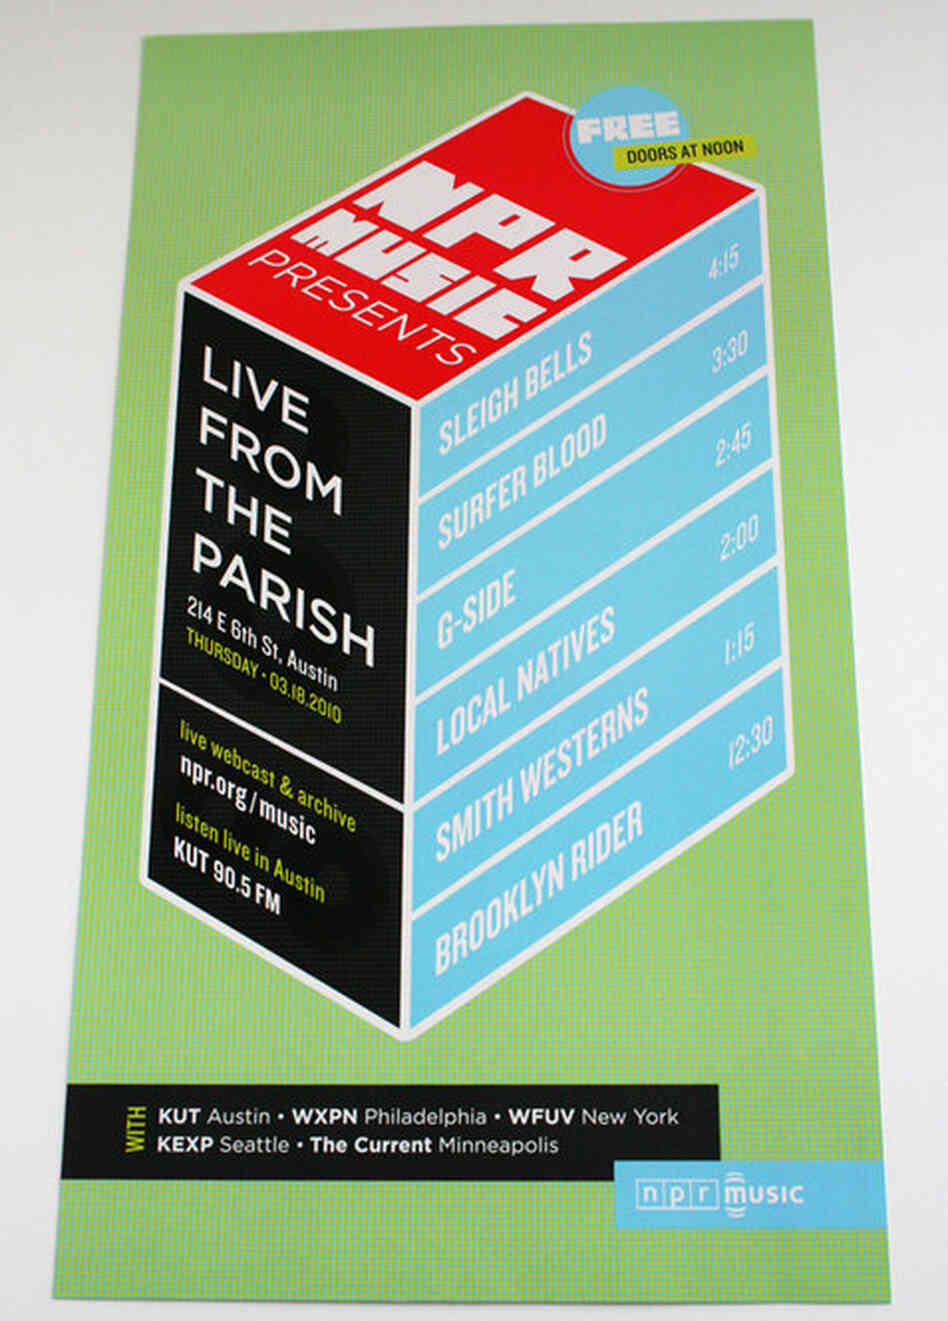 HOW Magazine 2011: A poster from NPR Music's popular day party at The Parish in Austin, 2010.